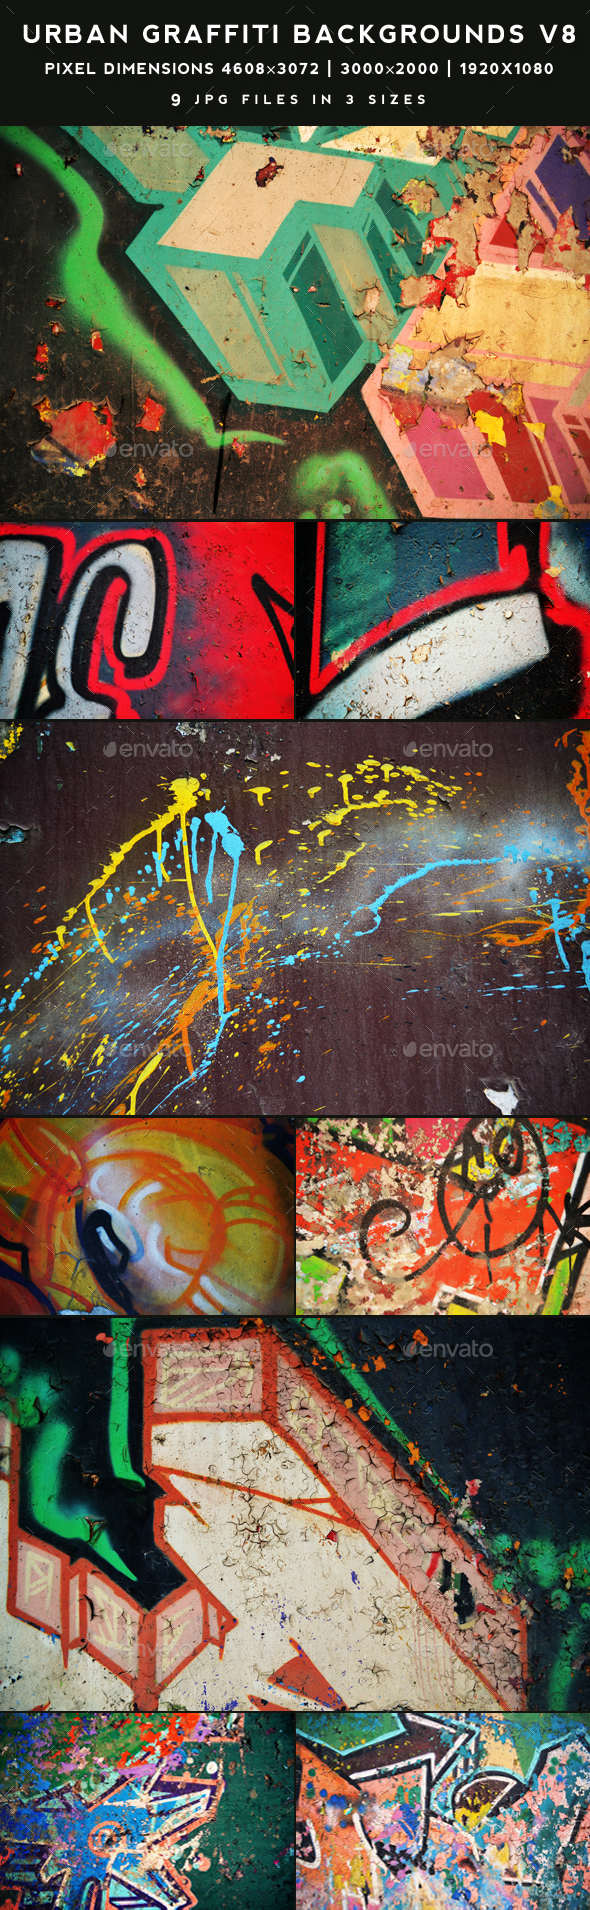 Urban Graffiti Backgrounds v8 - Urban Backgrounds